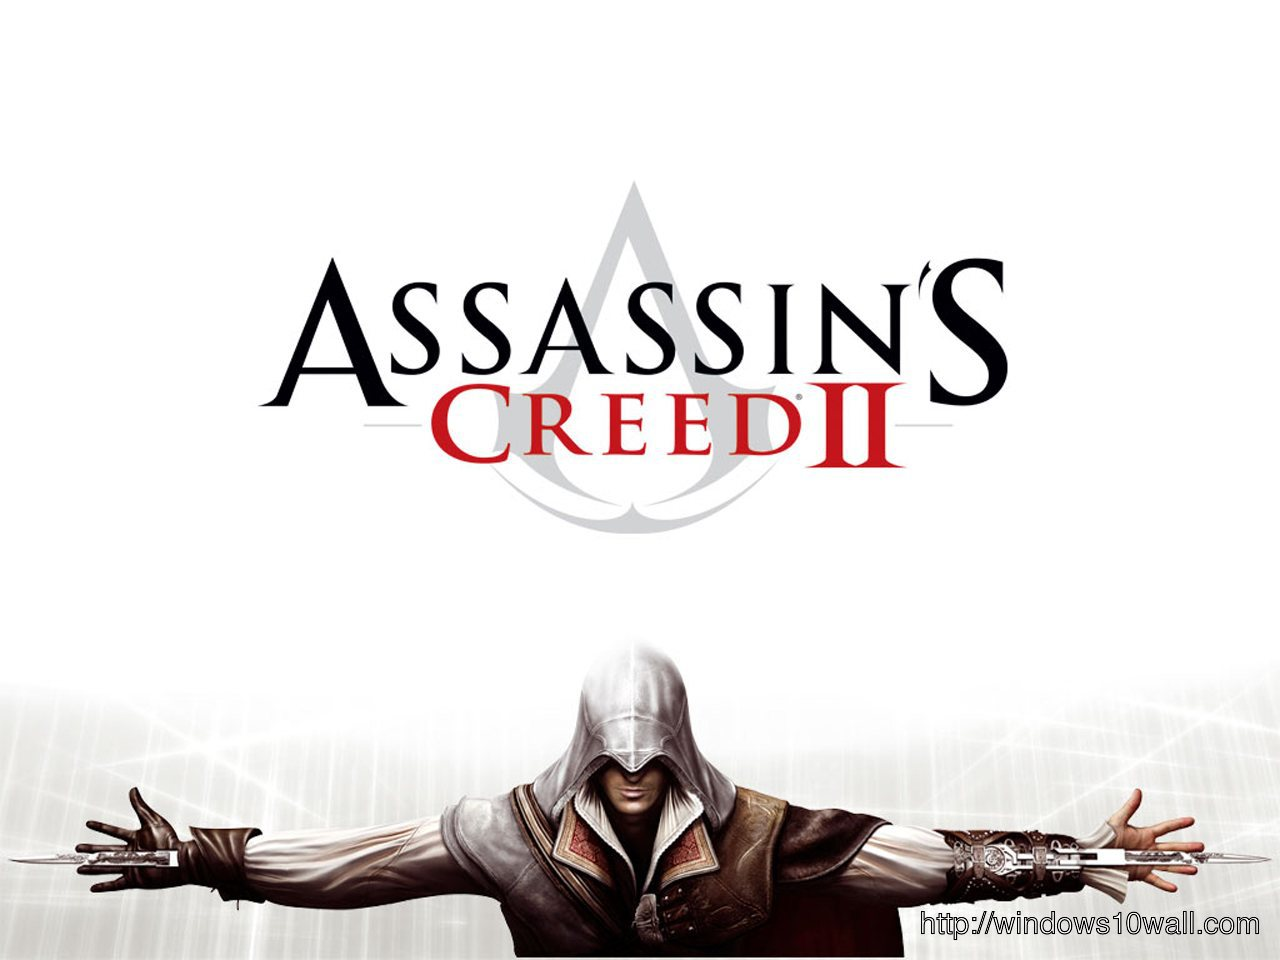 Welcome to the Assassin's Creed 2 wallpaper